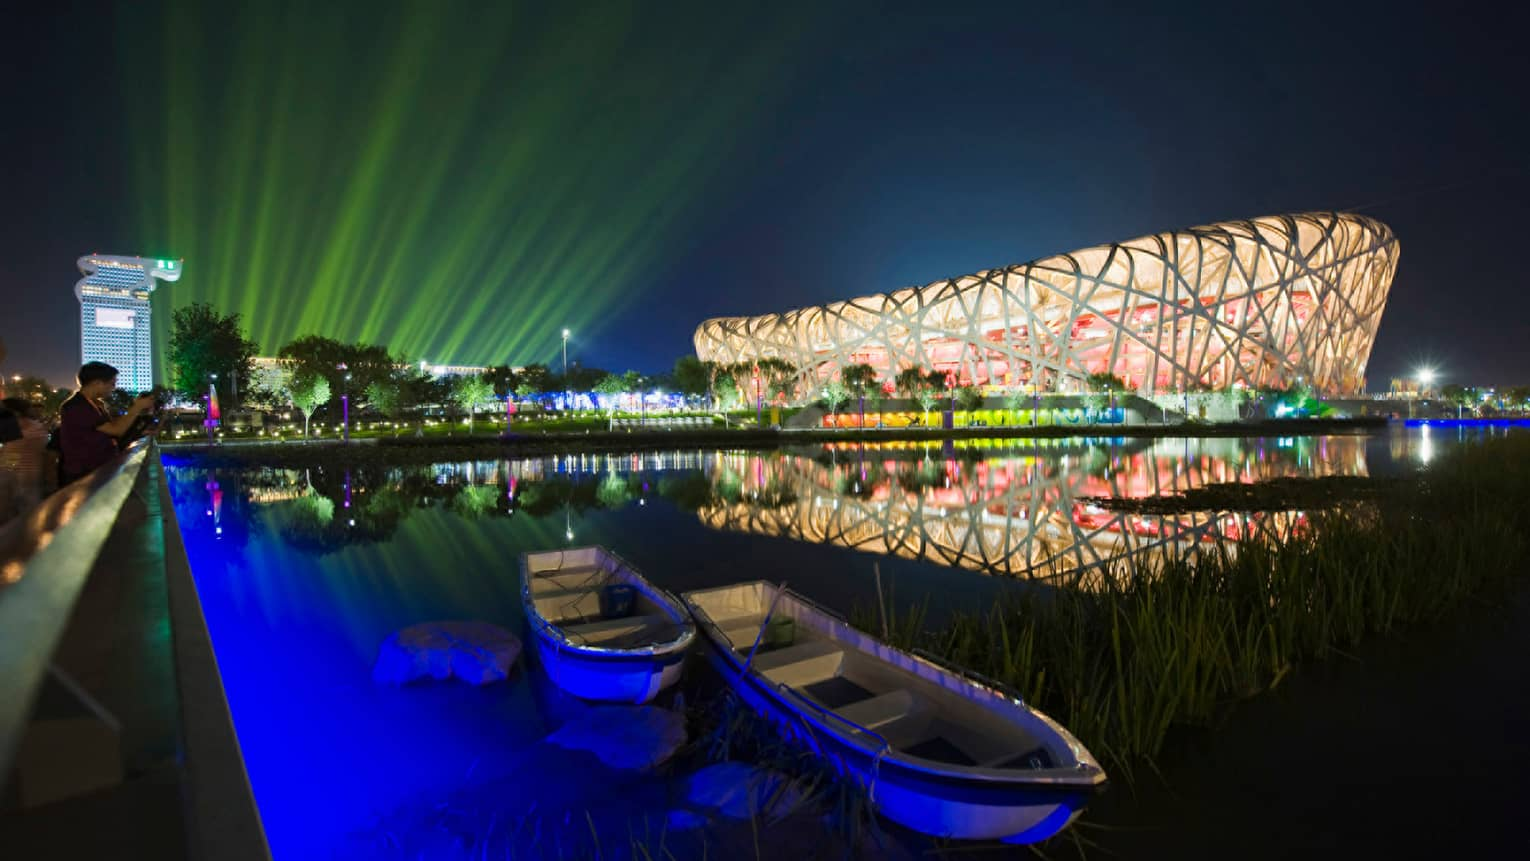 Exterior of Beijing National Stadium bird's nest-shaped building lit up at night